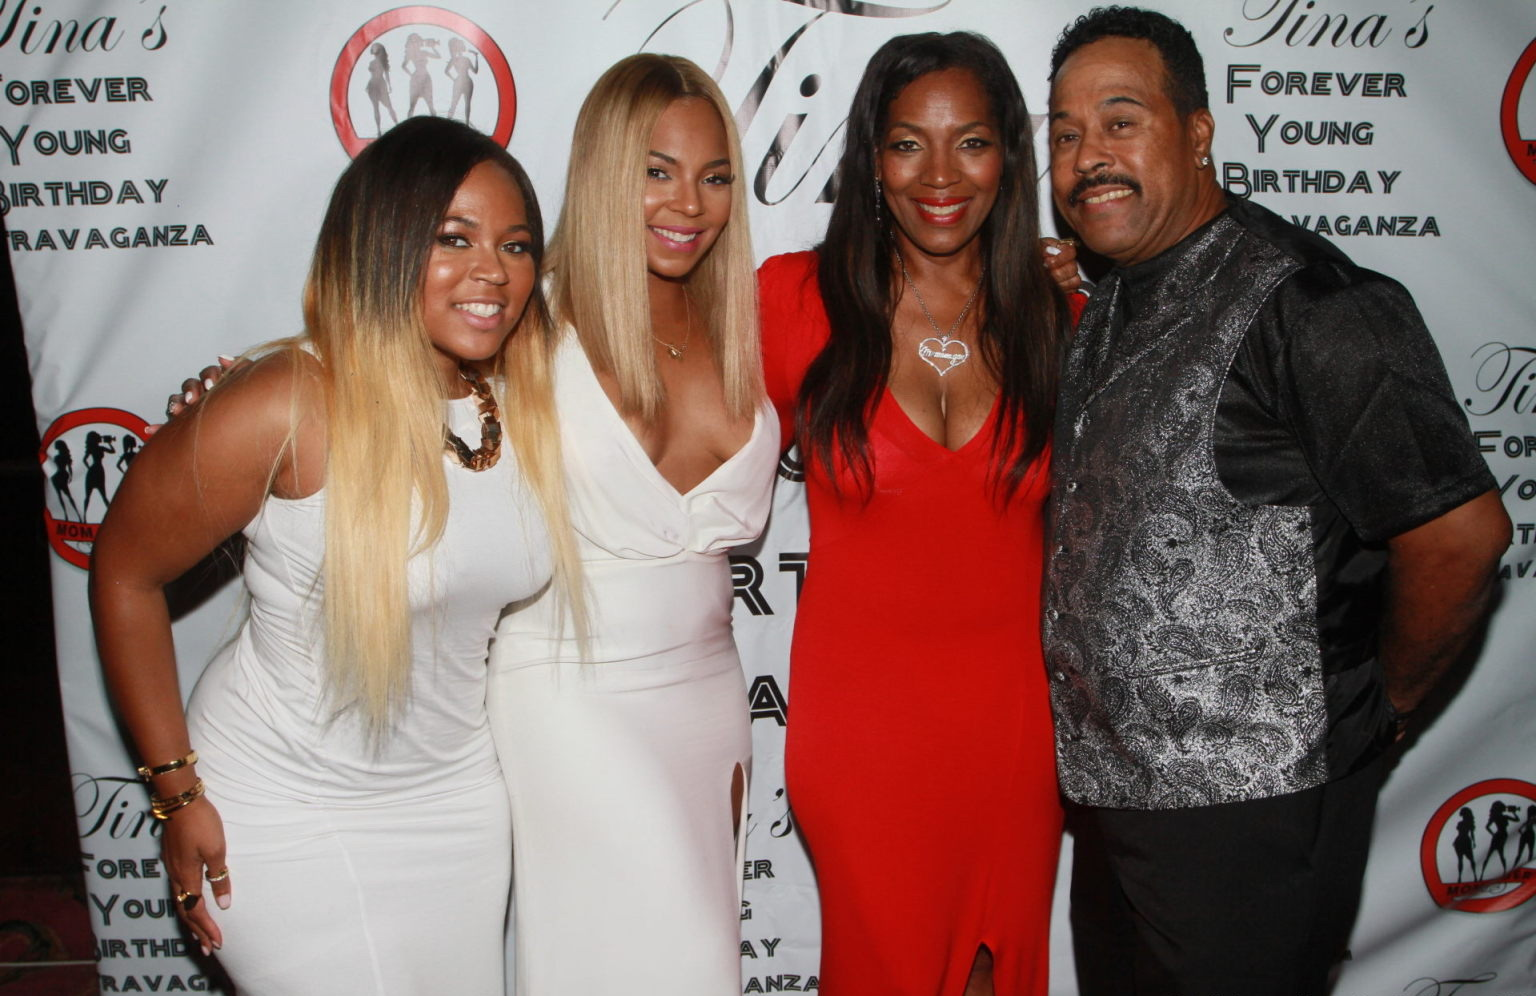 Ashanti at Tinas Forever Young Birthday Extravaganza in New York